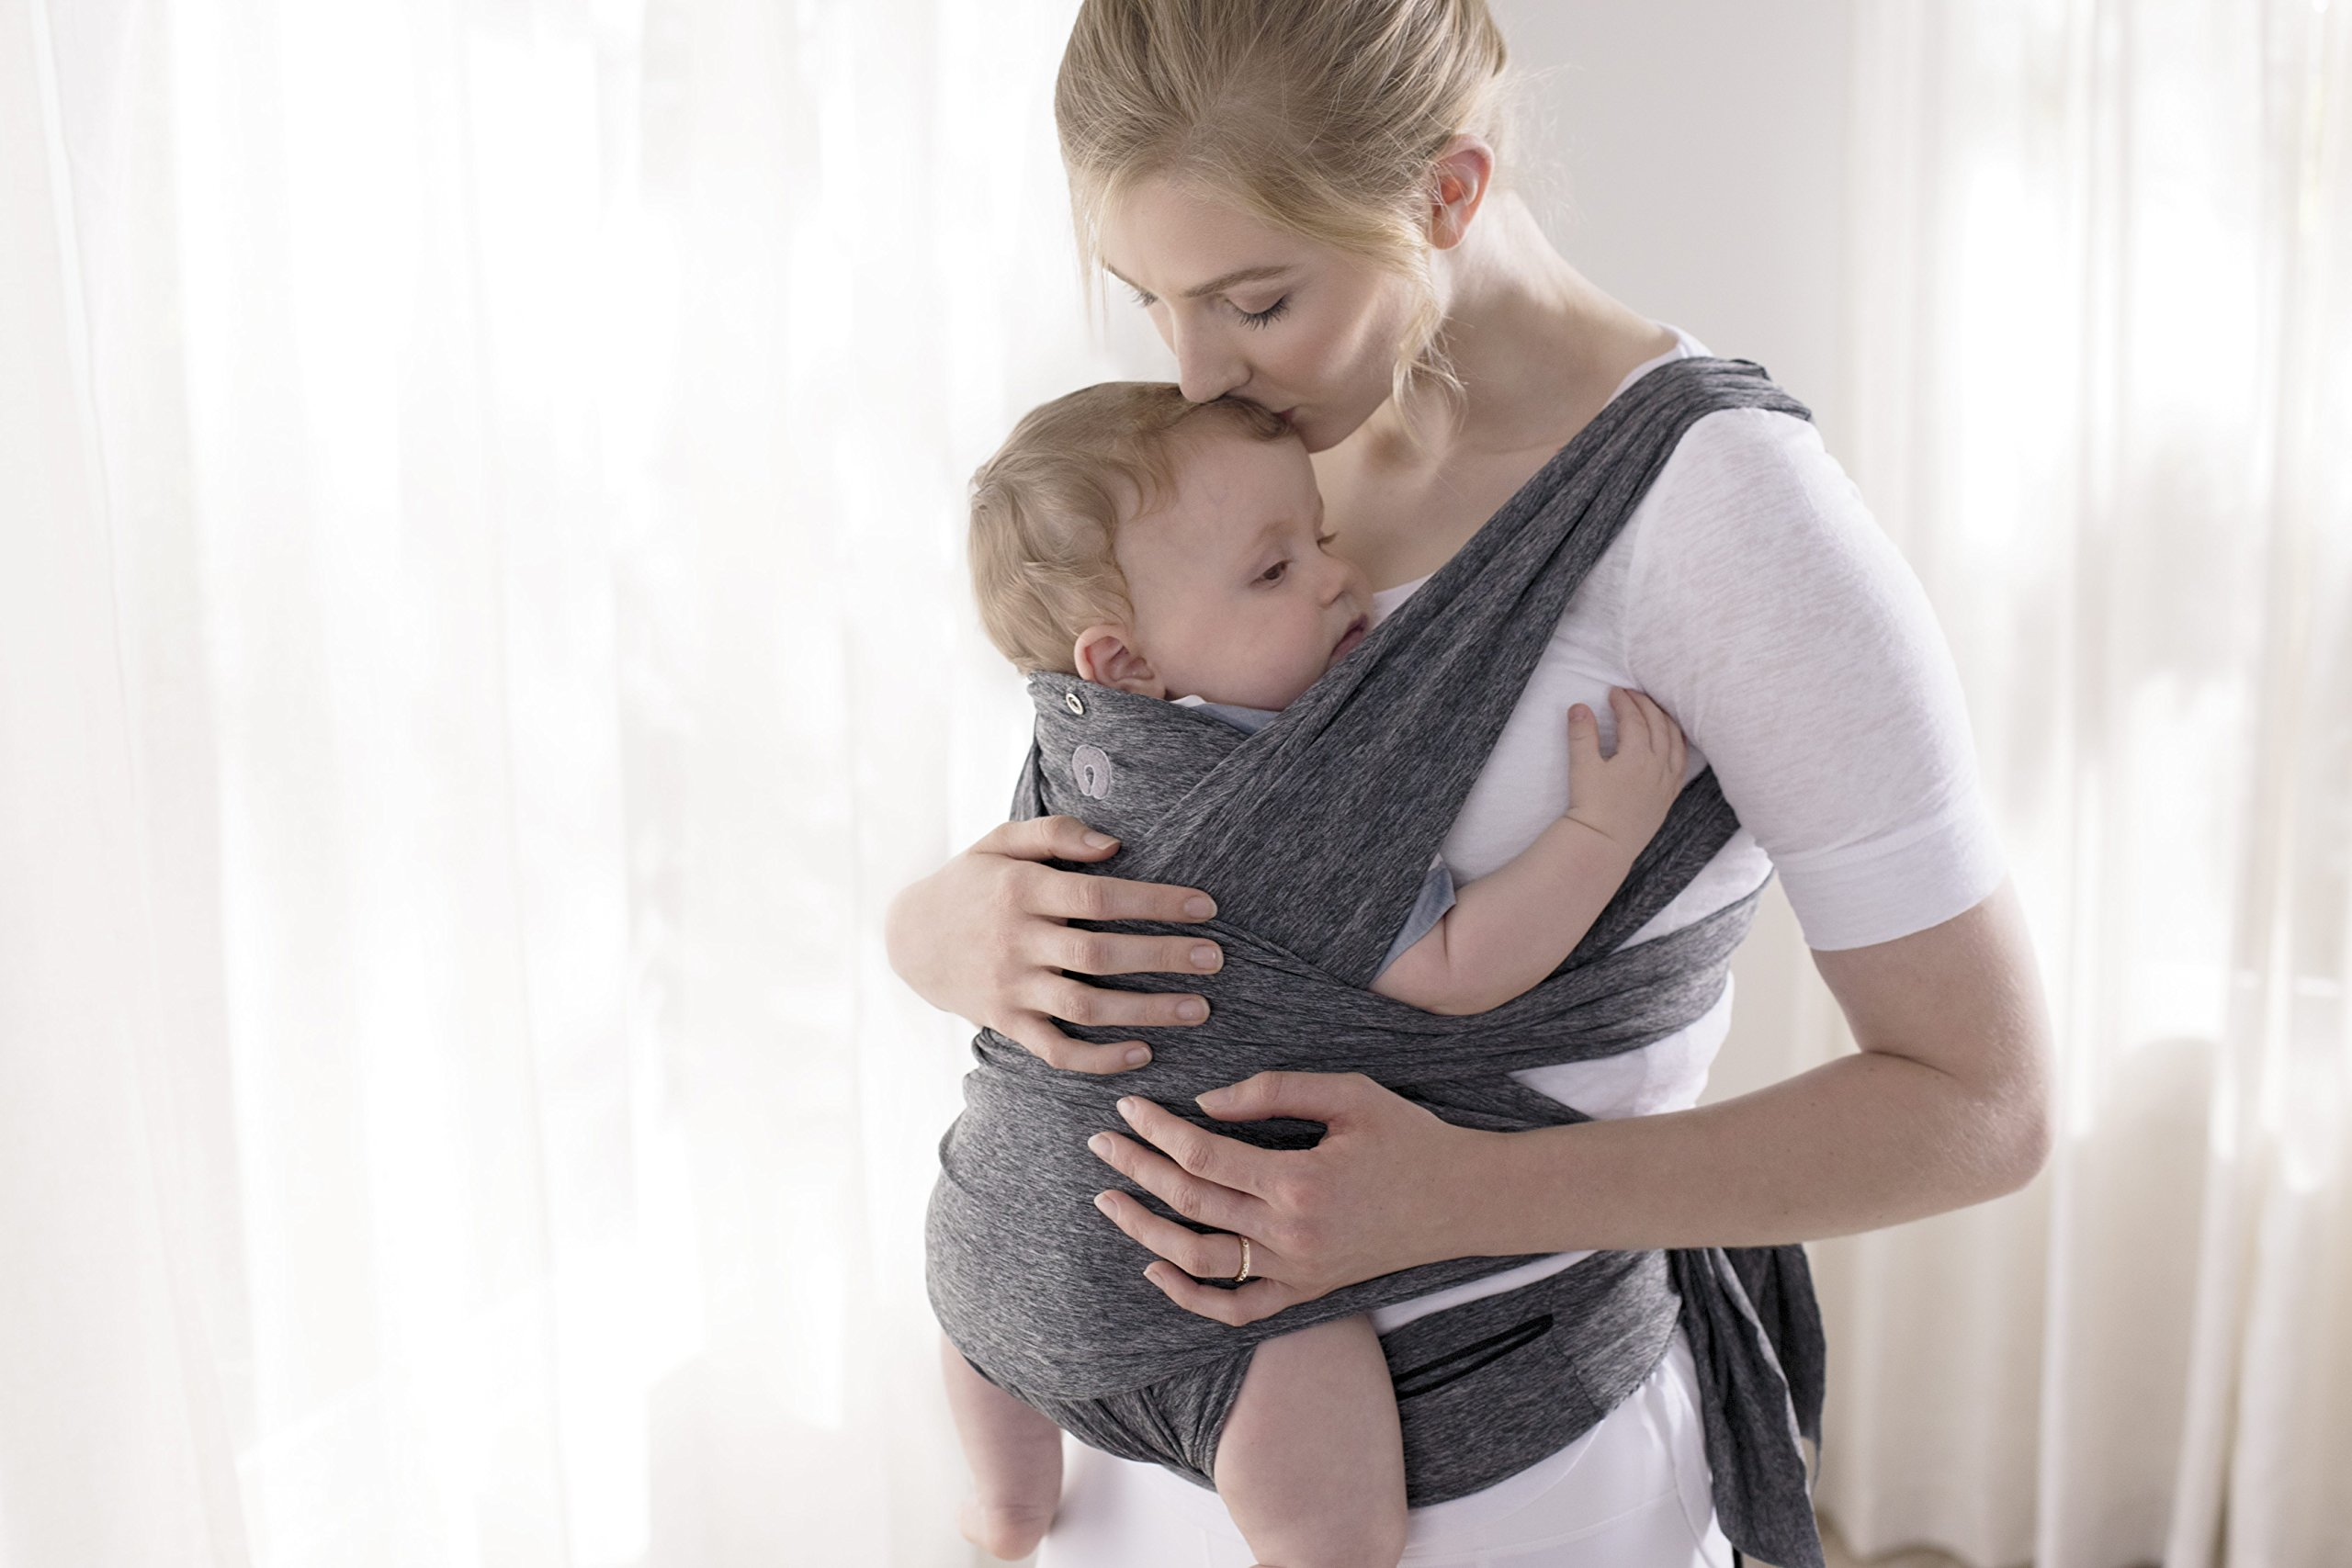 Chicco ComfyFit Baby Carrier One size Chicco Perfect fit, no infant insert required; recommended baby weight: 8-35lbs One size fits most, which makes sharing your carrier between caregivers quick and easy 2 comfy carrying positions: front face-in and front face-out 5